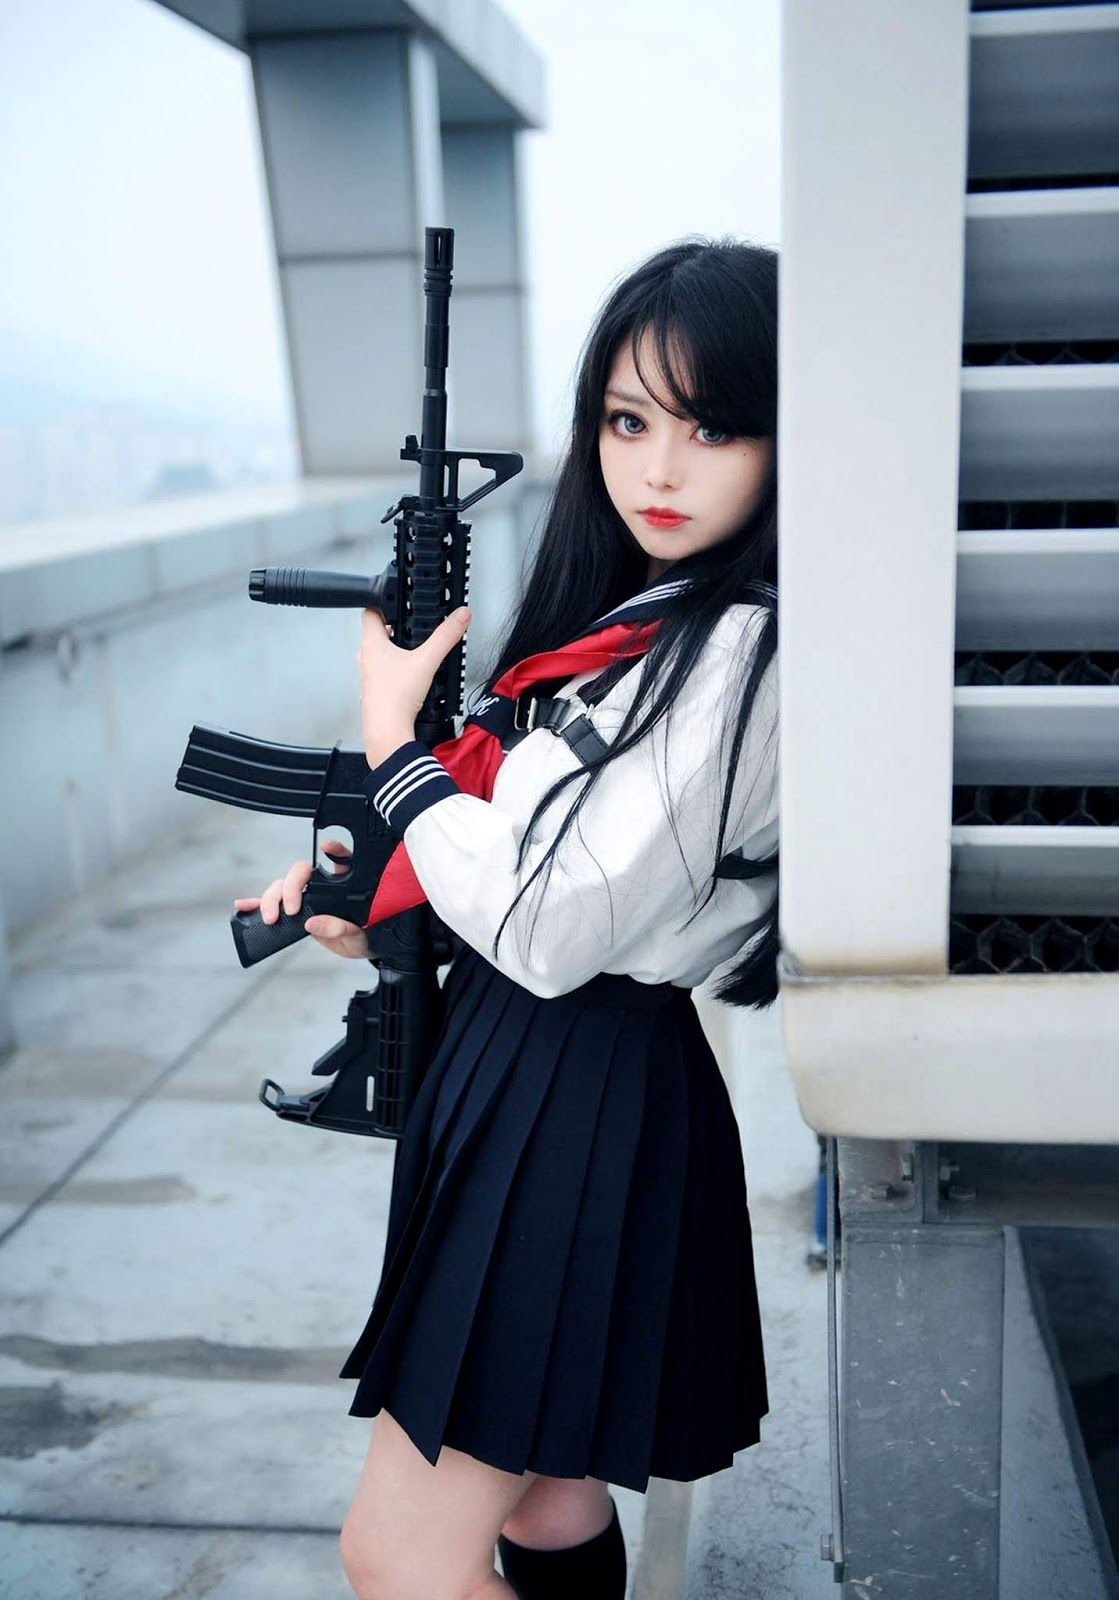 Asian girls with guns